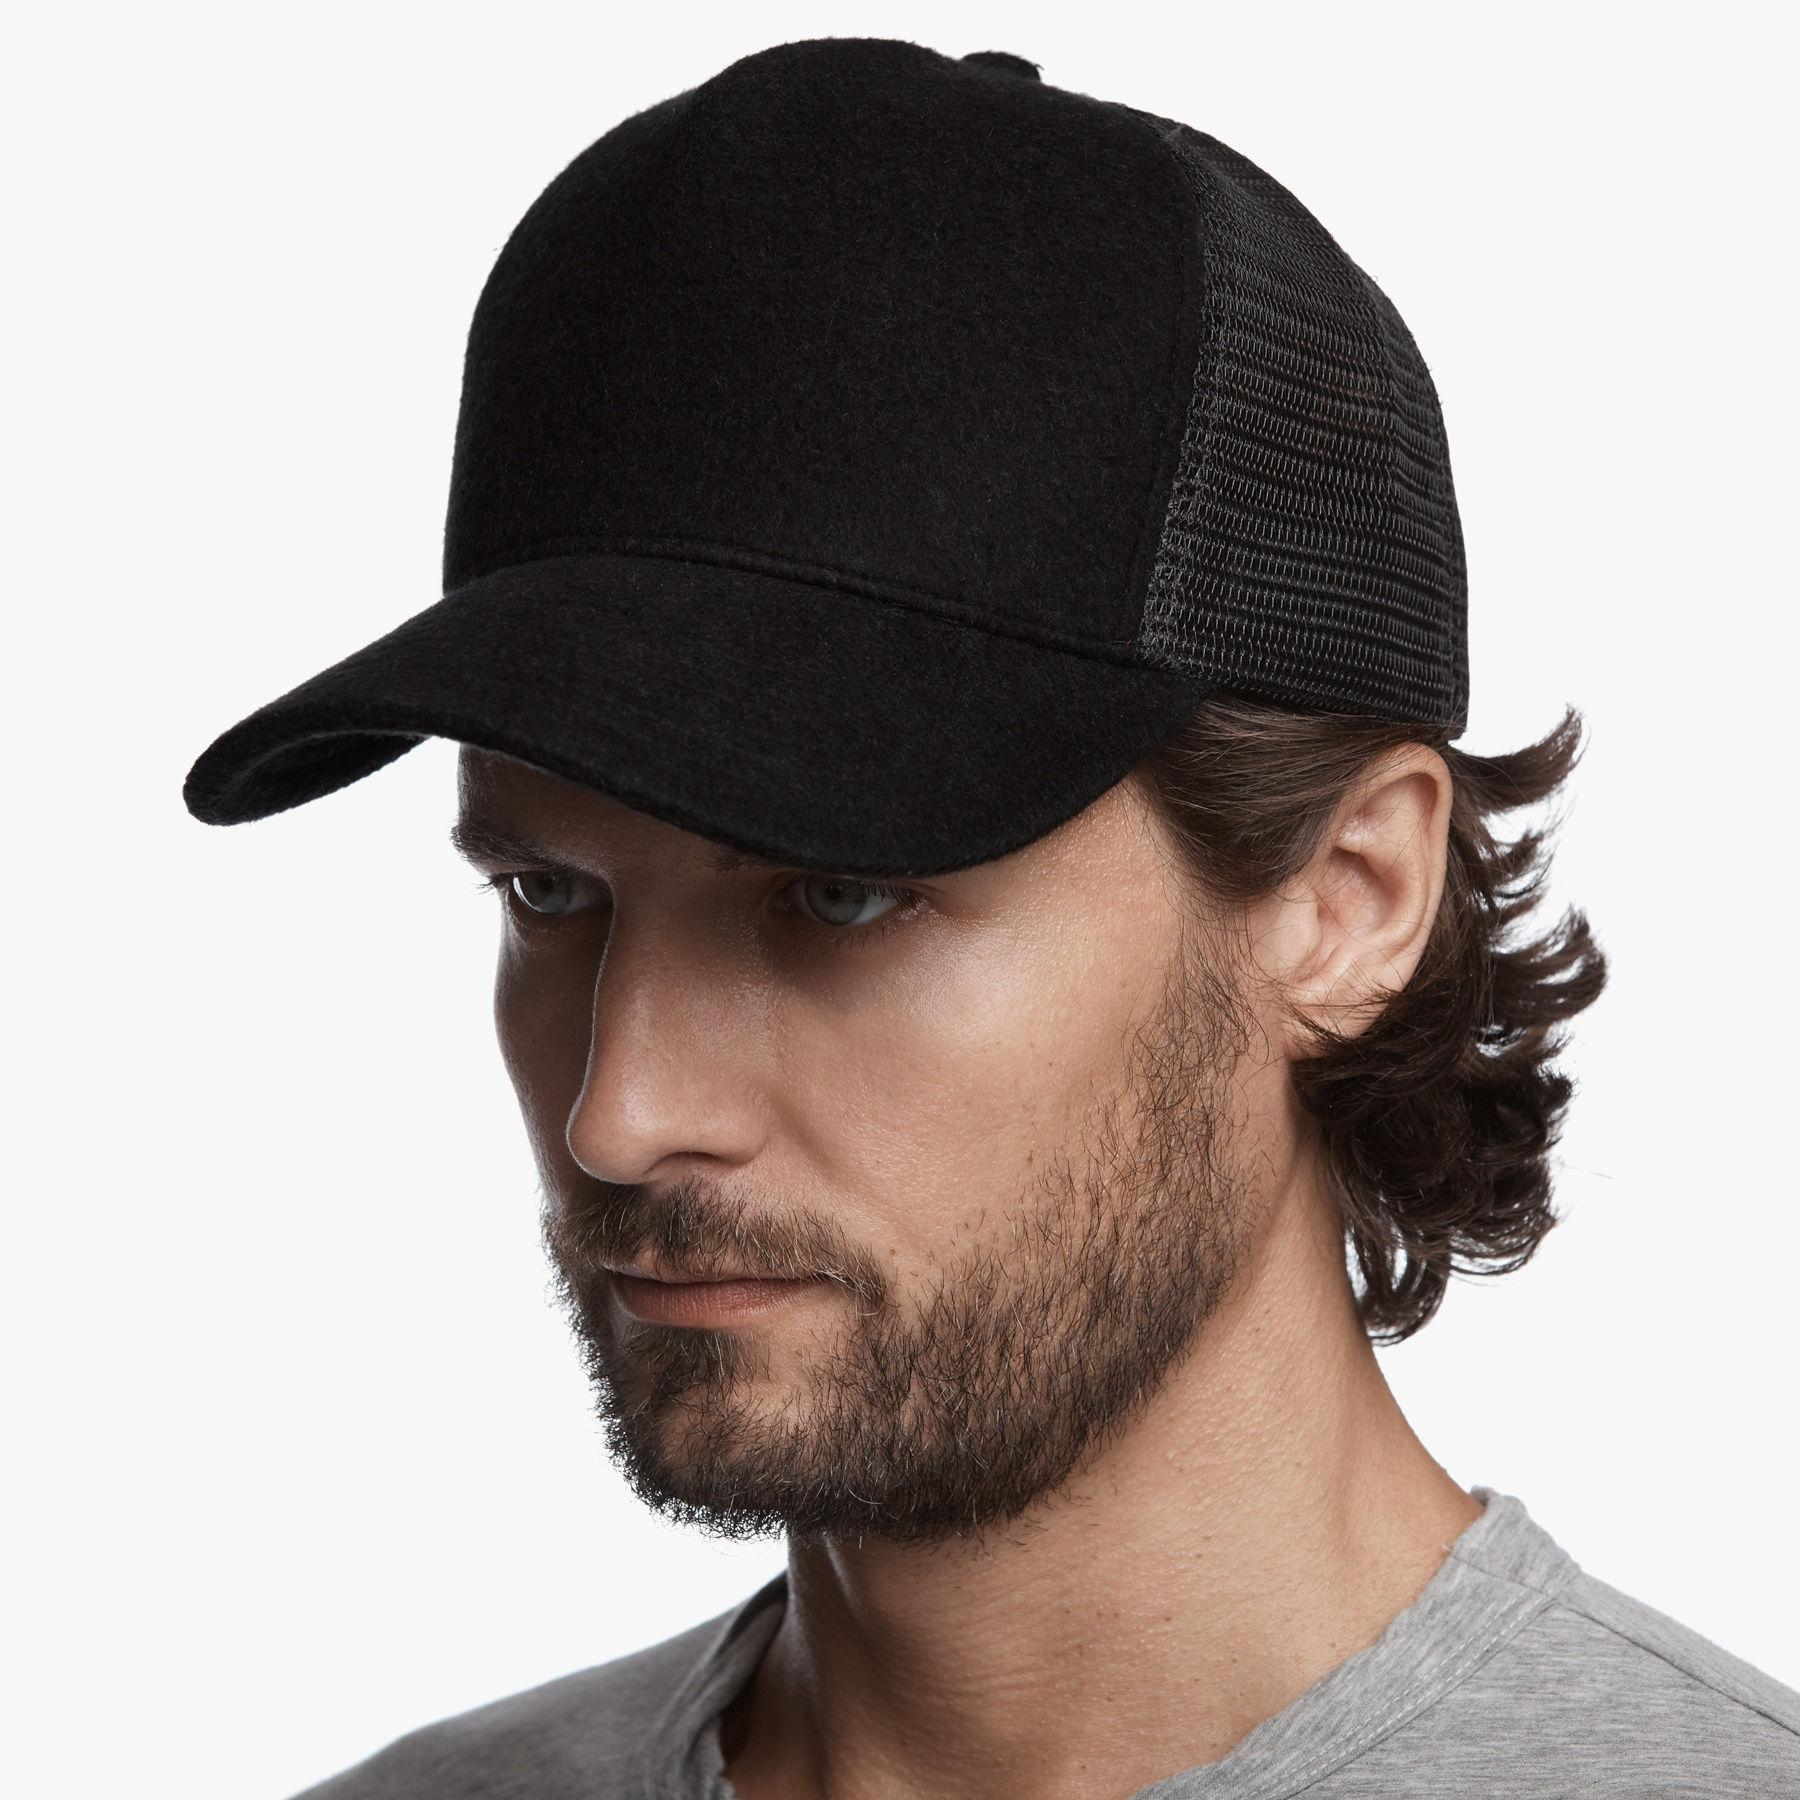 3b65b8b90a7 Lyst - James Perse Terry Trucker Hat in Black for Men